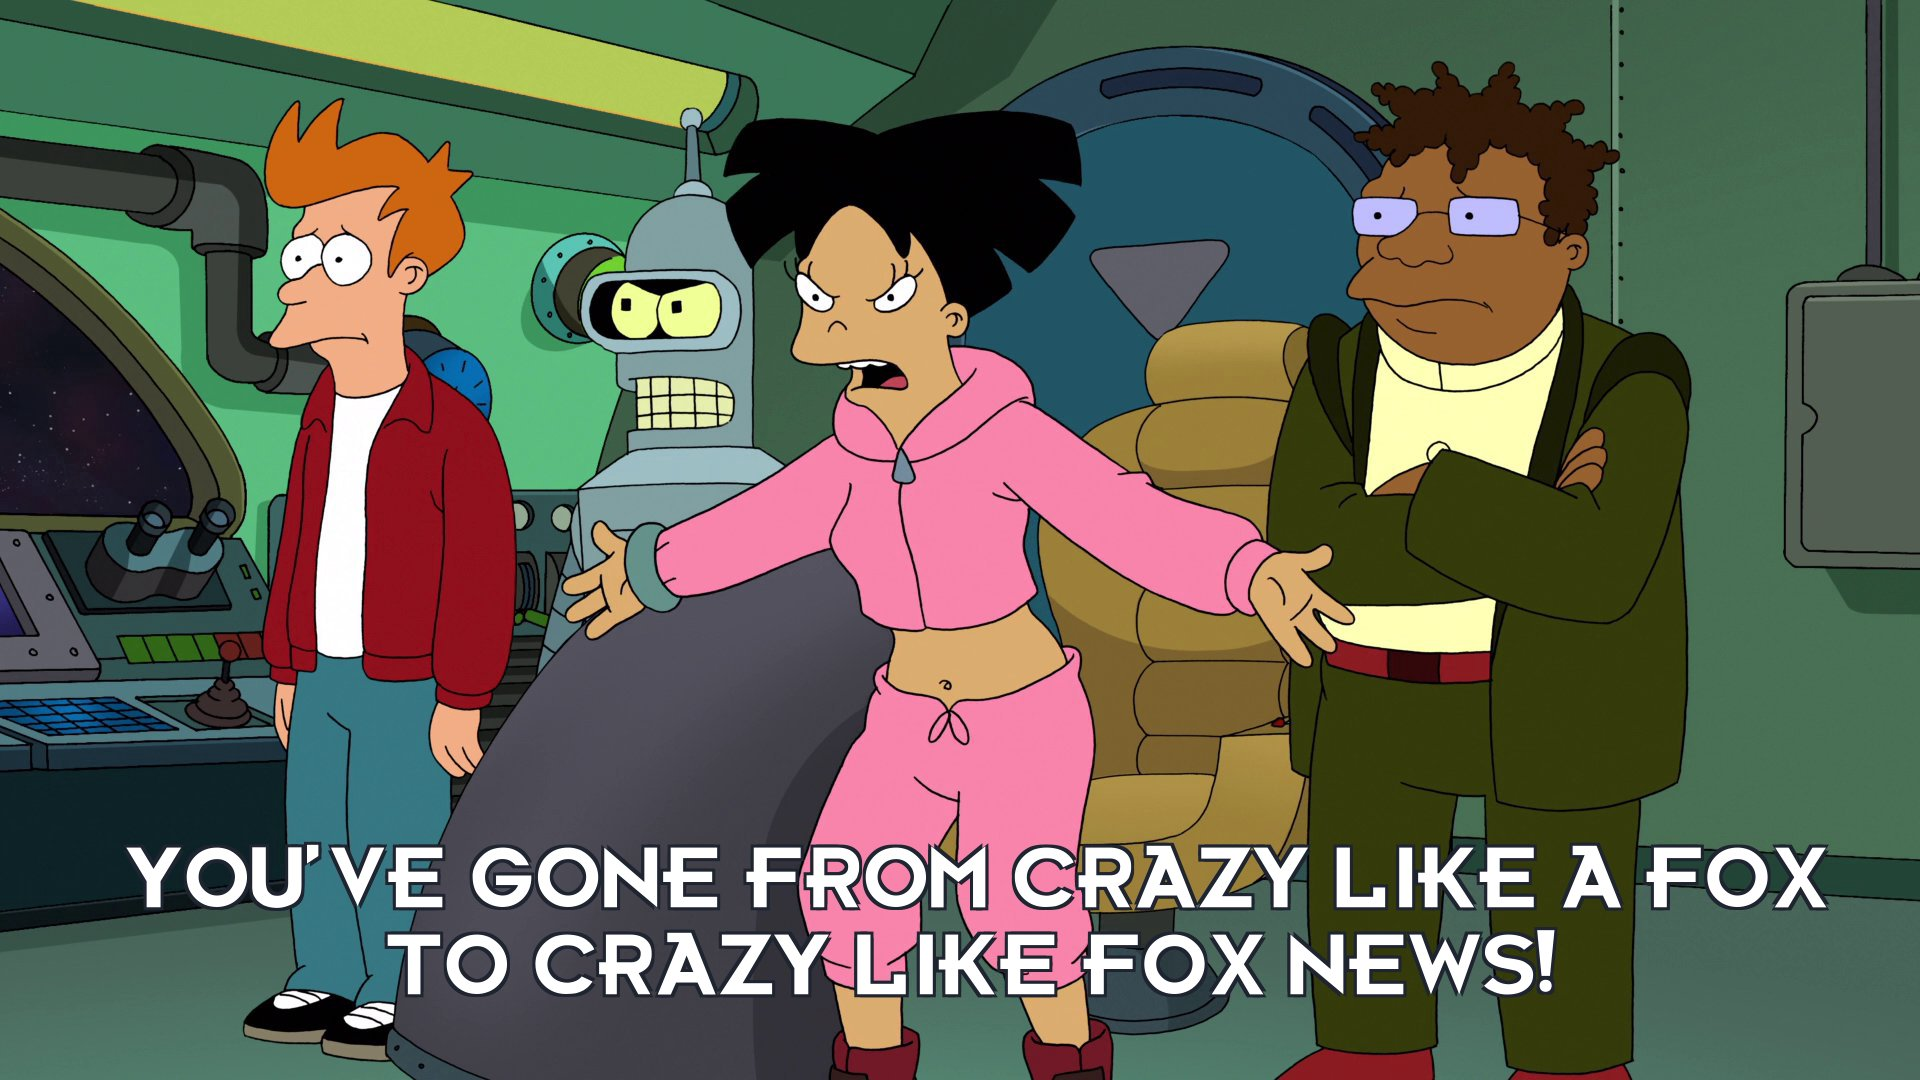 Amy Wong: You've gone from crazy like a fox to crazy like Fox News!